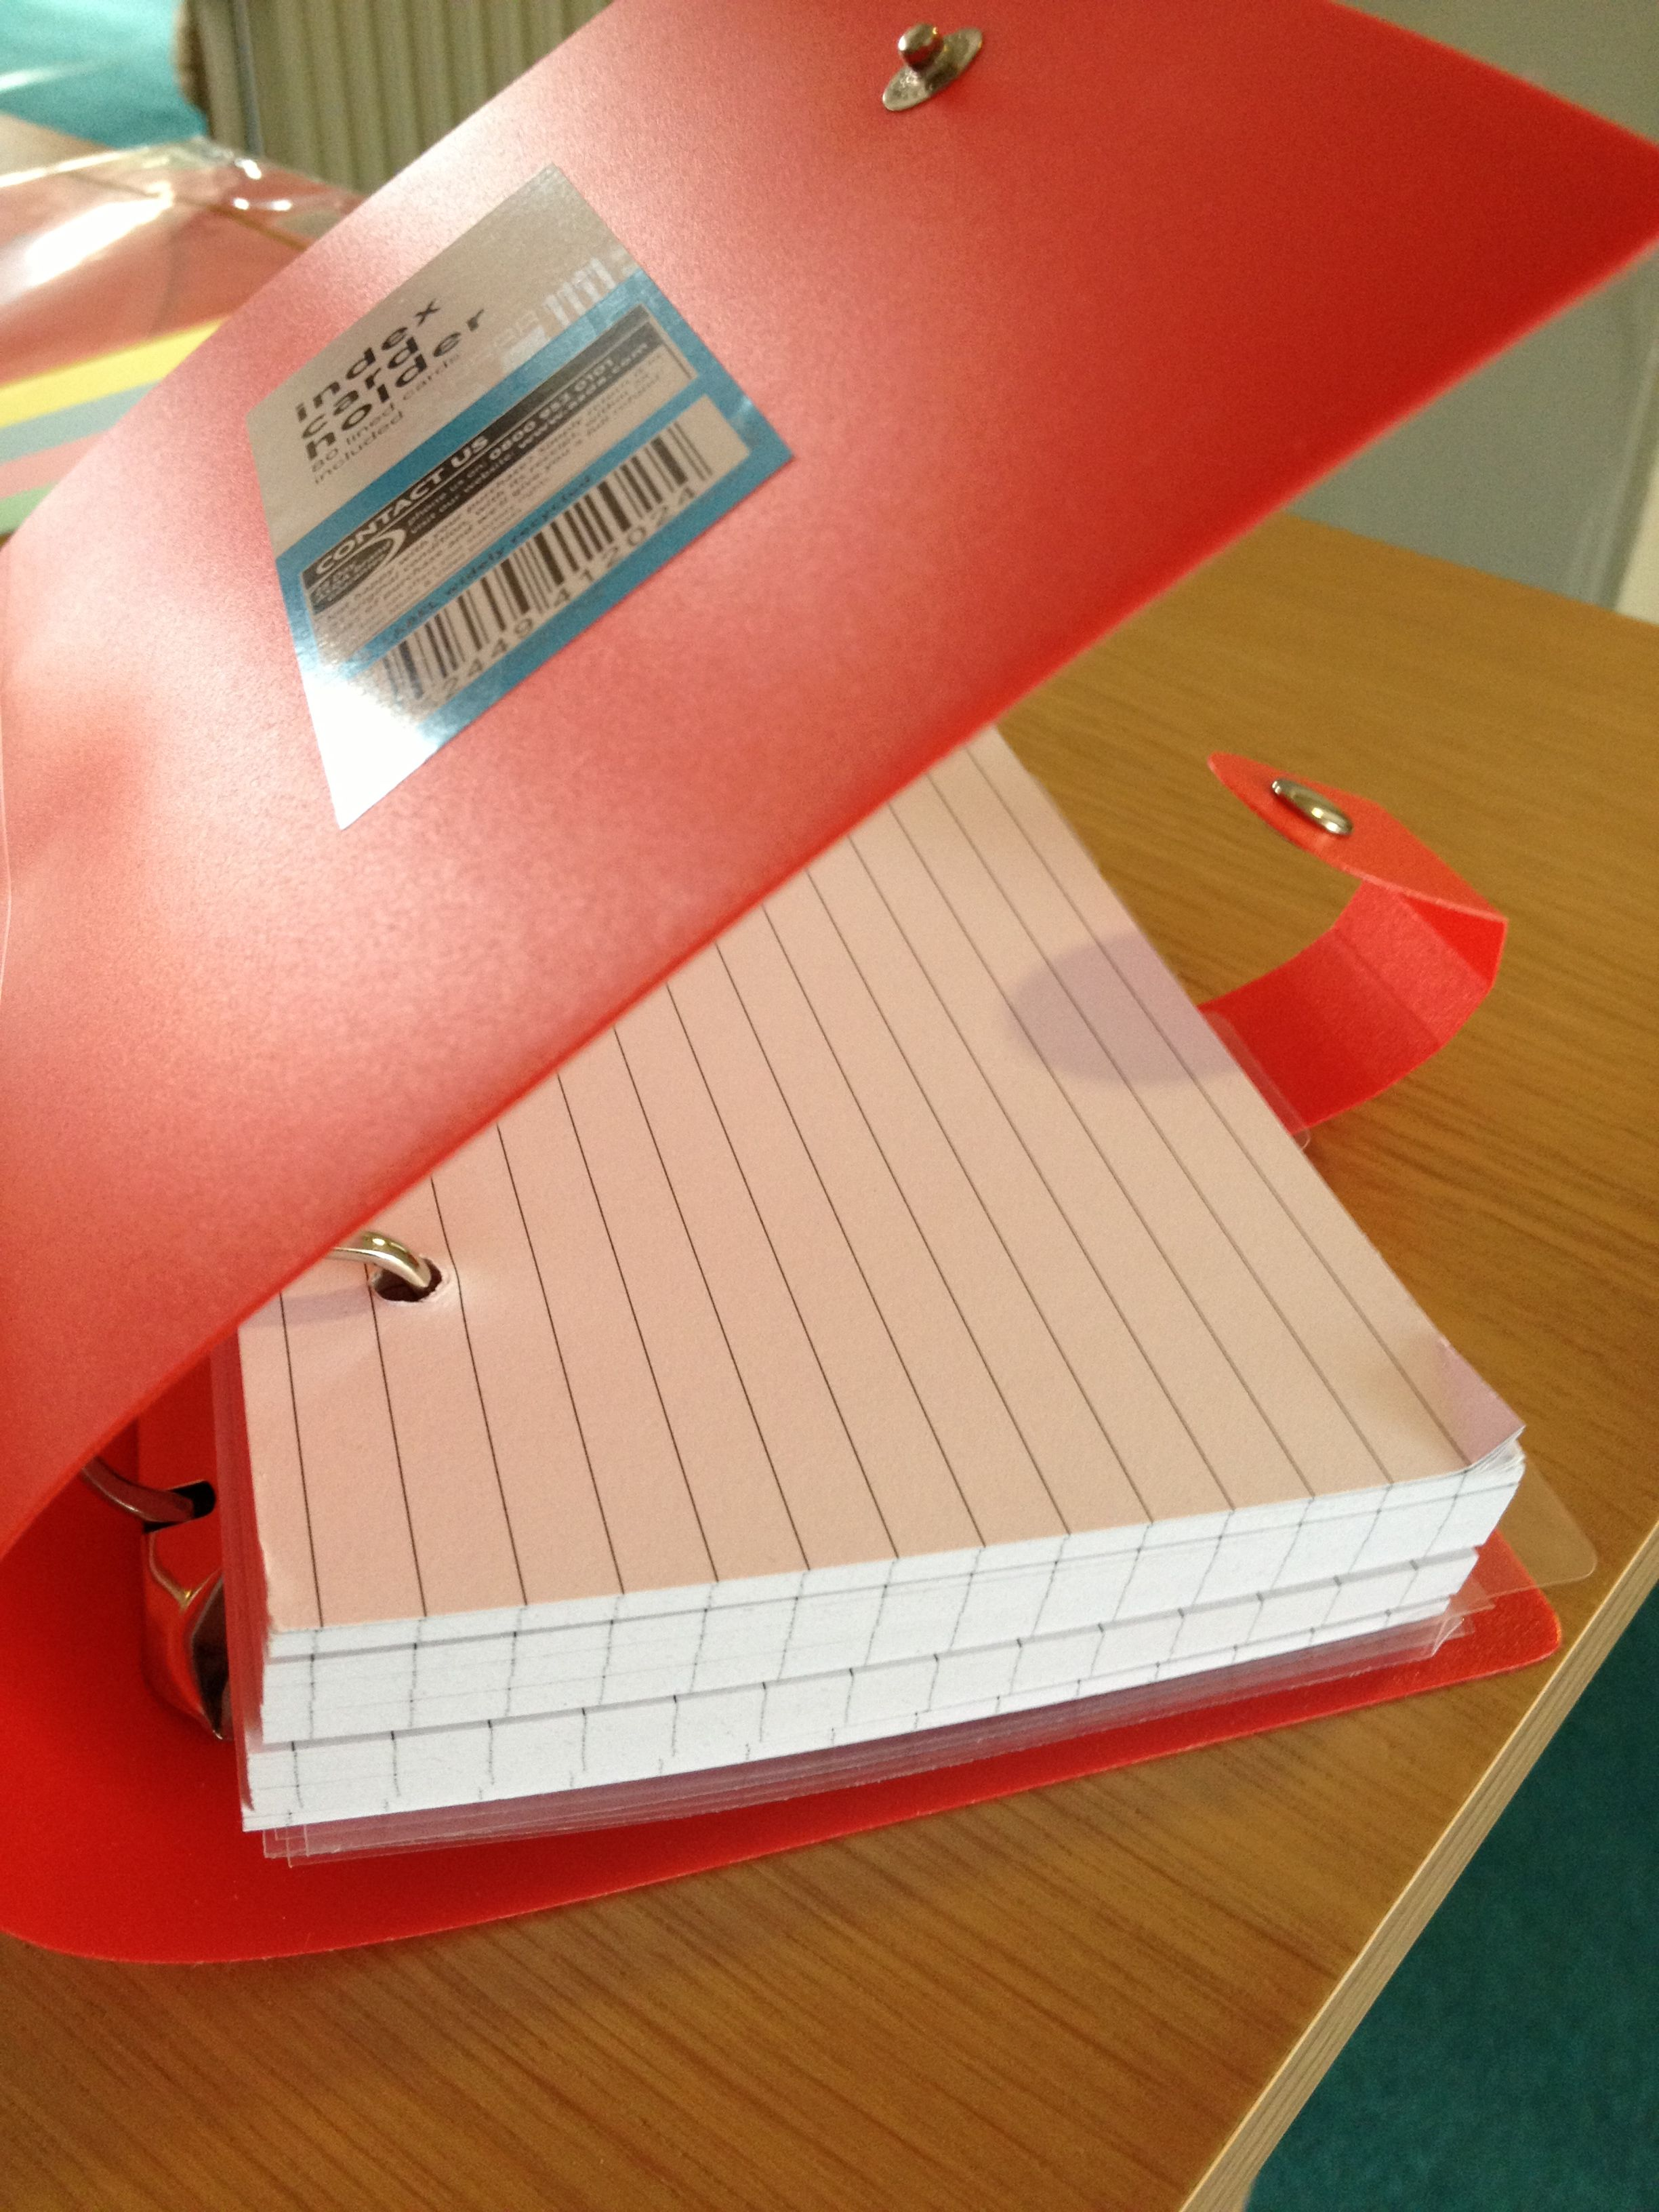 Love This Index Card Folder Bought For 1 50 At Asda Today Ideal For Revising Key Concepts Ideas Words Cards Index Cards Paper